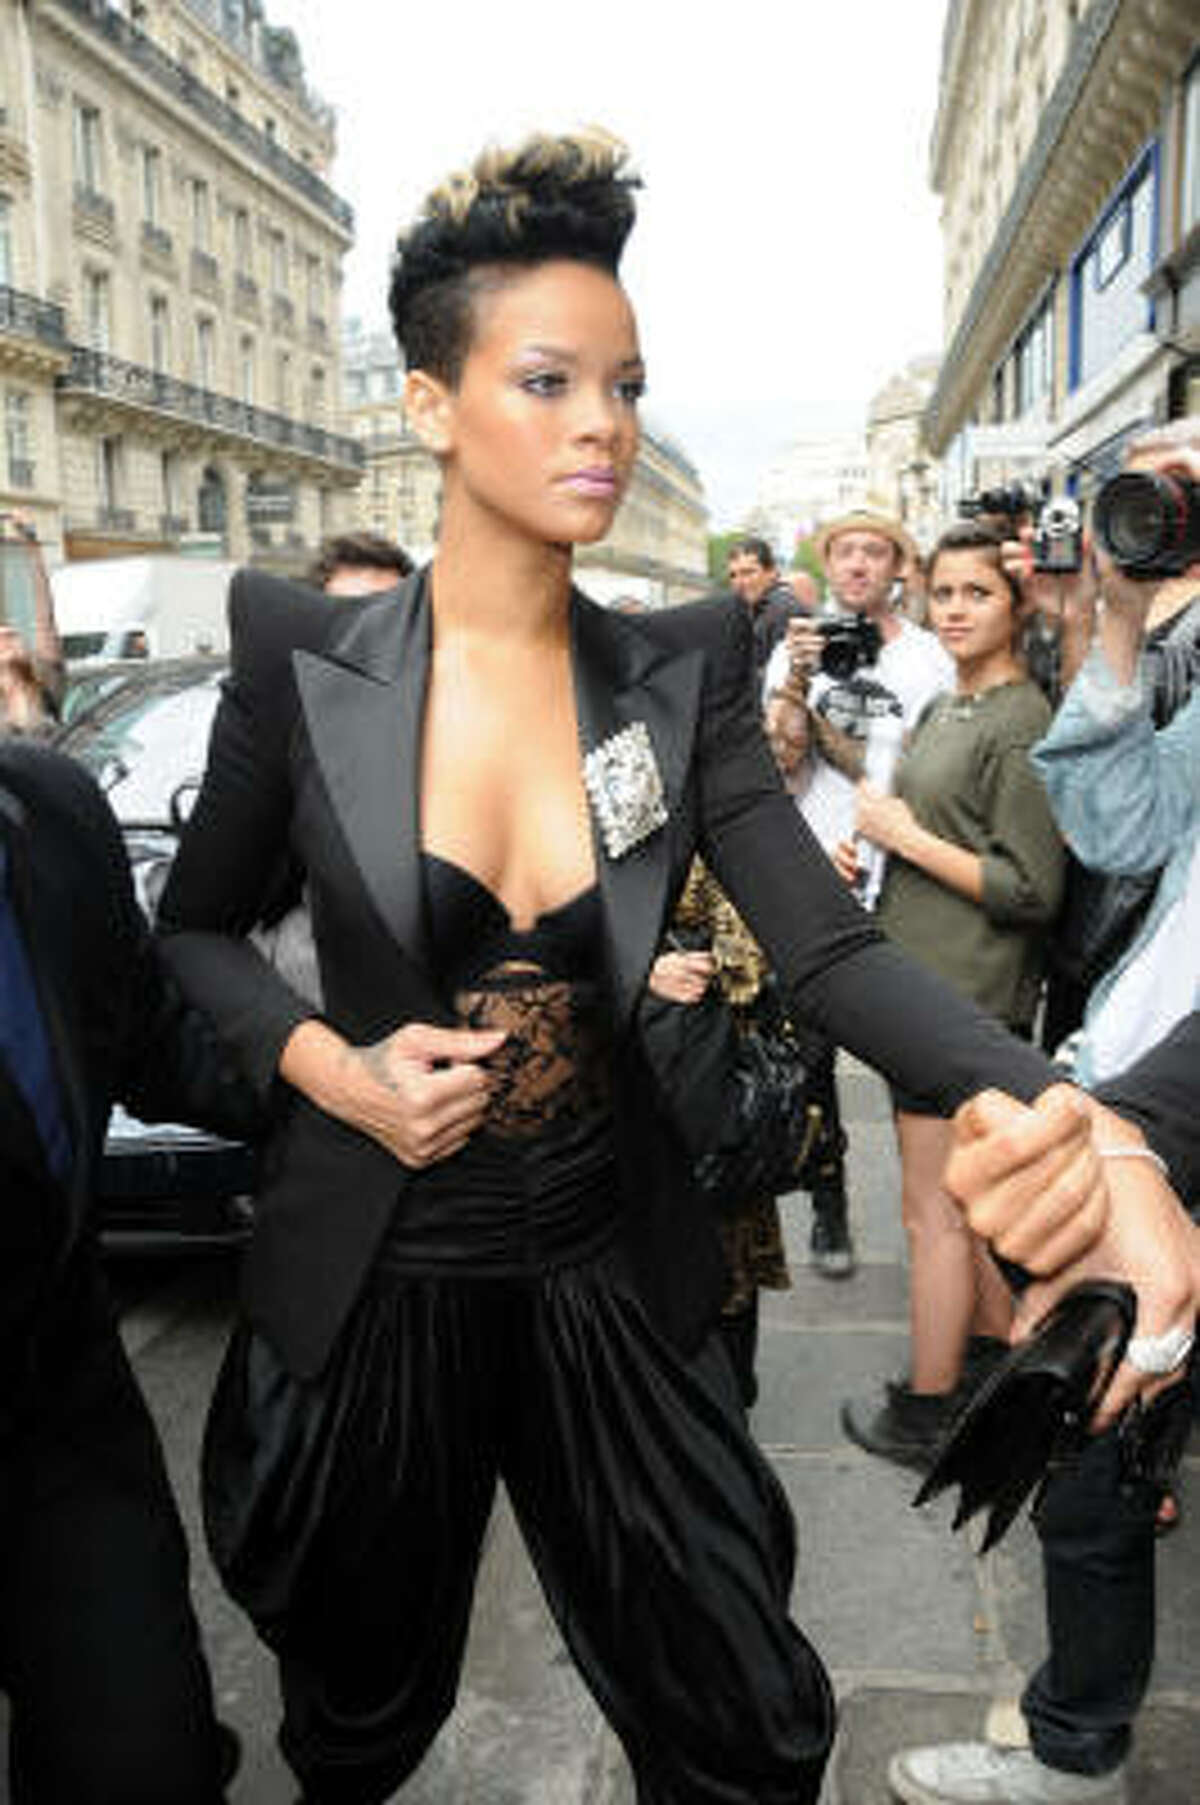 Rihanna at Paris Fashion Week dressed in the look for fall: shoulder pads. Don't worry ladies of the 80s, they're back. Read more about the style here.